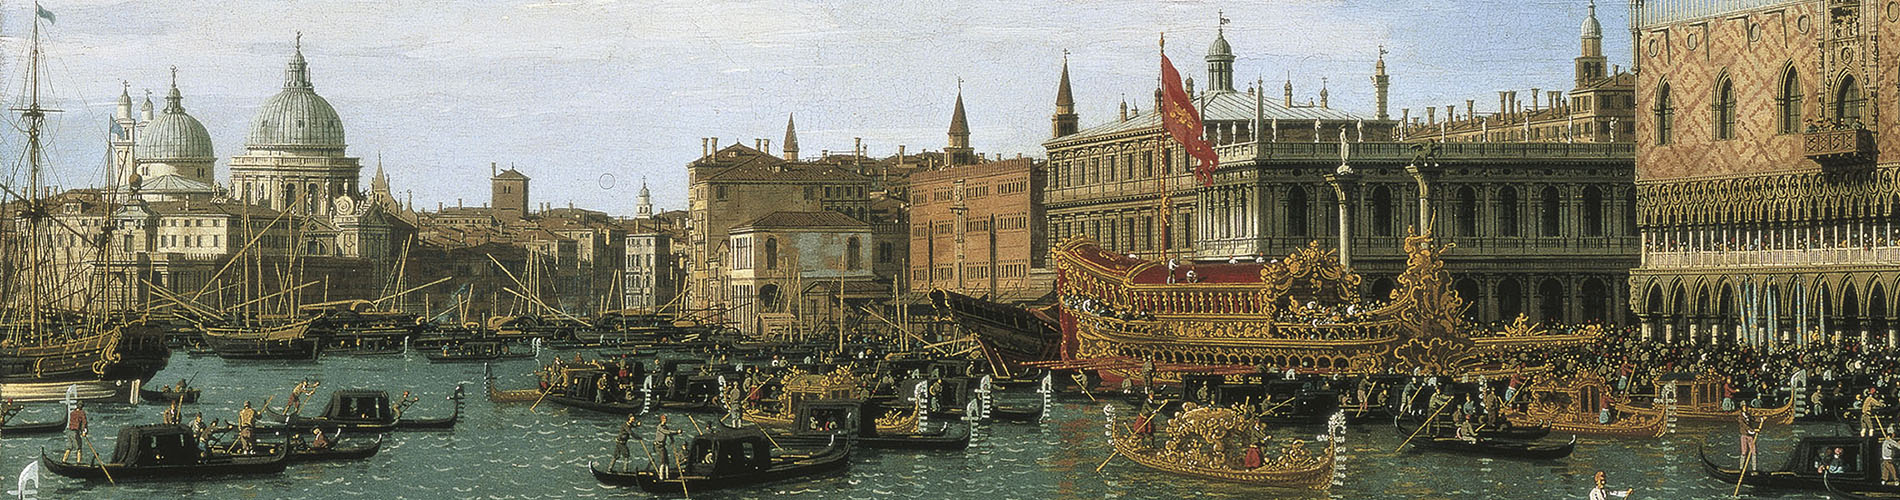 Return of 'Il Bucintoro' on Ascension Day, Canaletto, 1745-1750